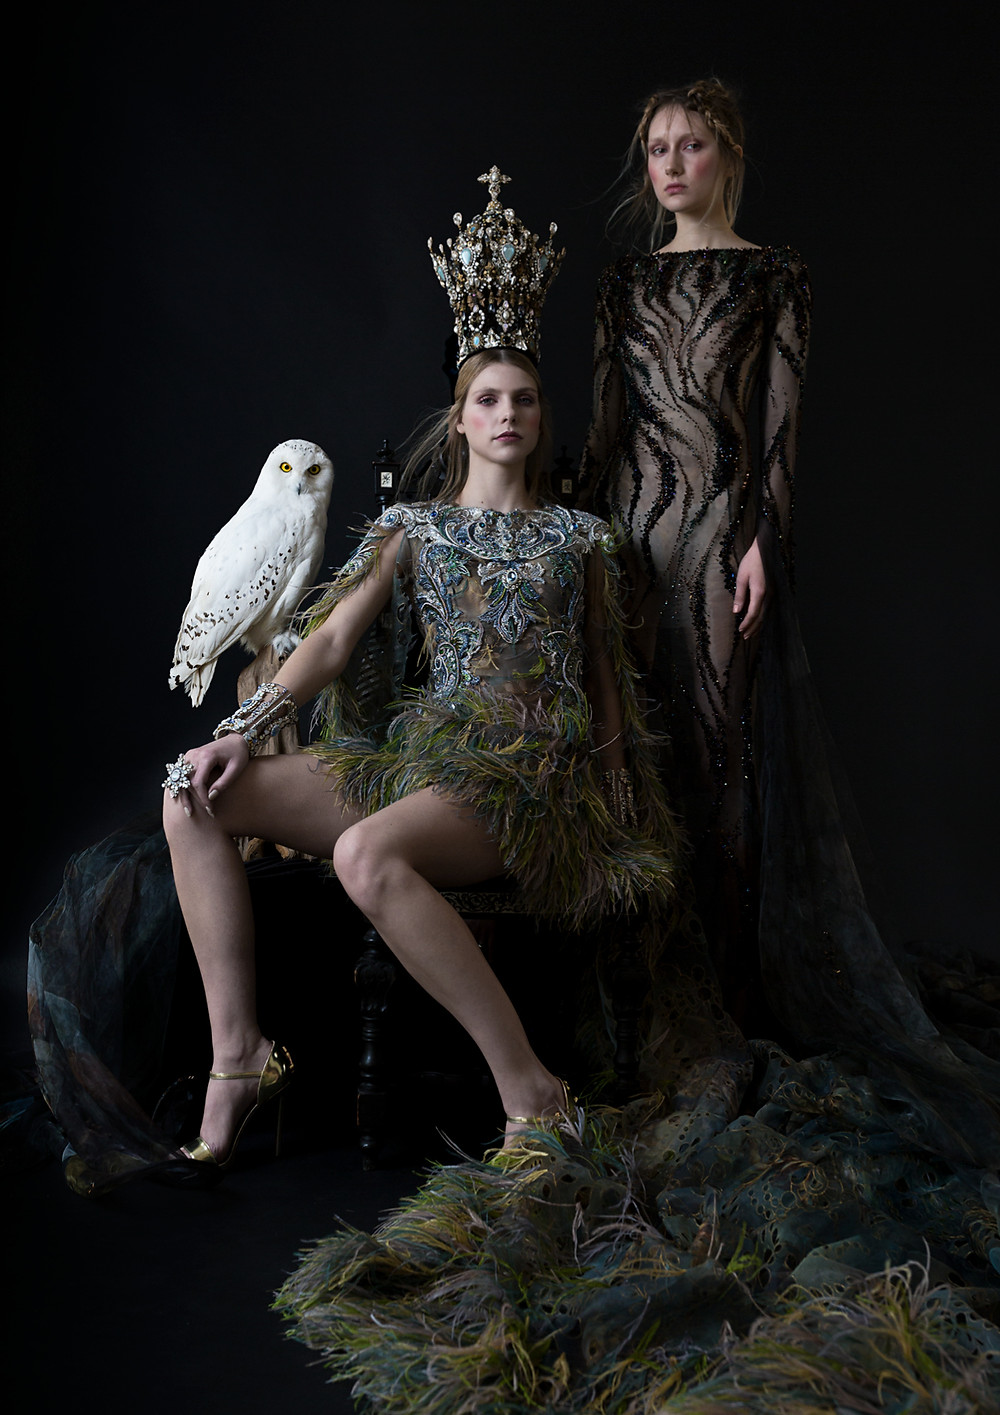 Photograph by French Cowboy for IRK' Garden of Eden issue 6 featuring gowns by Guo Pei